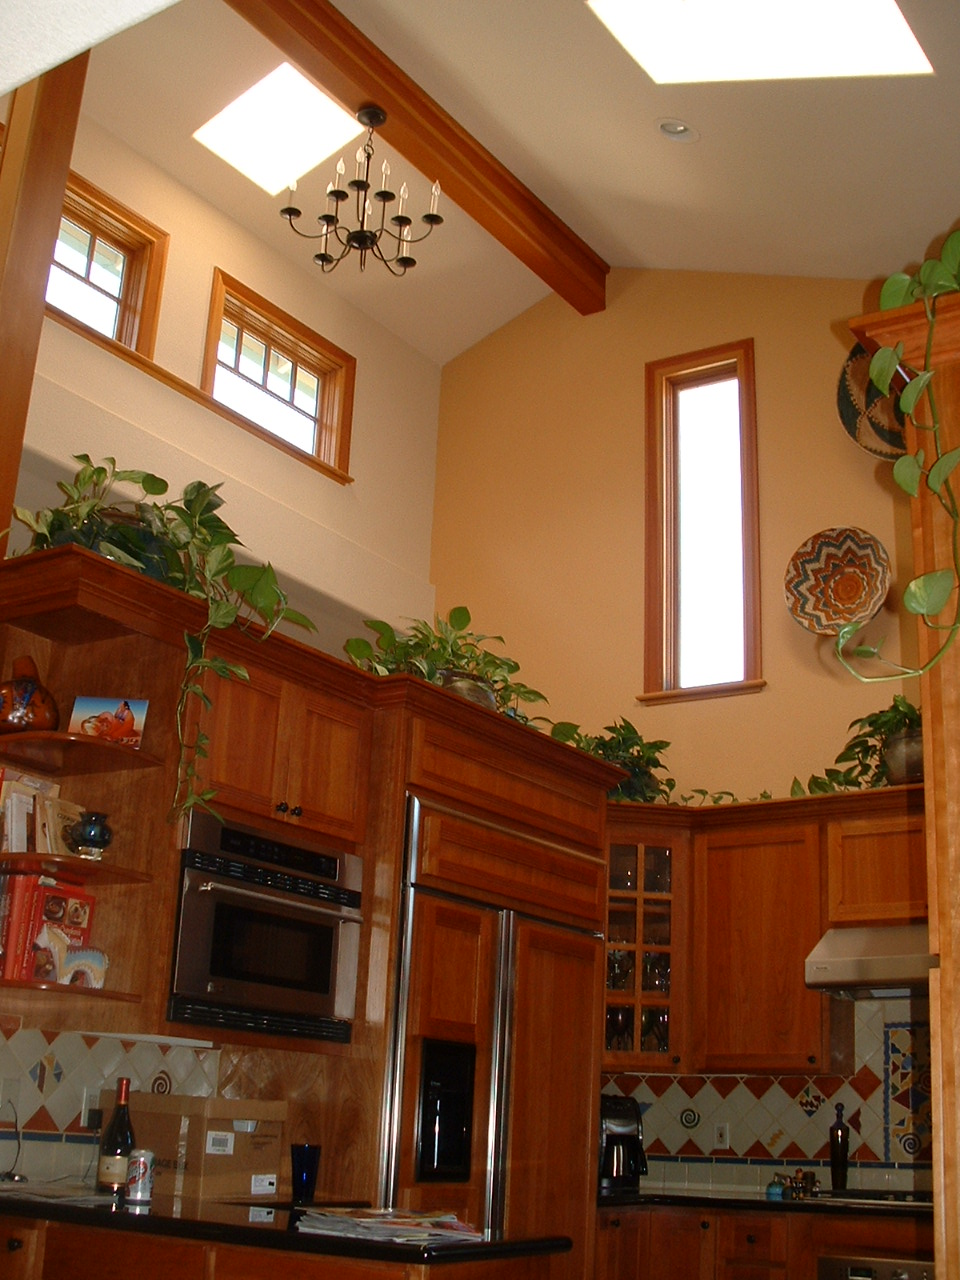 High Ceiling With Decorative Plants Decorating Pinterest